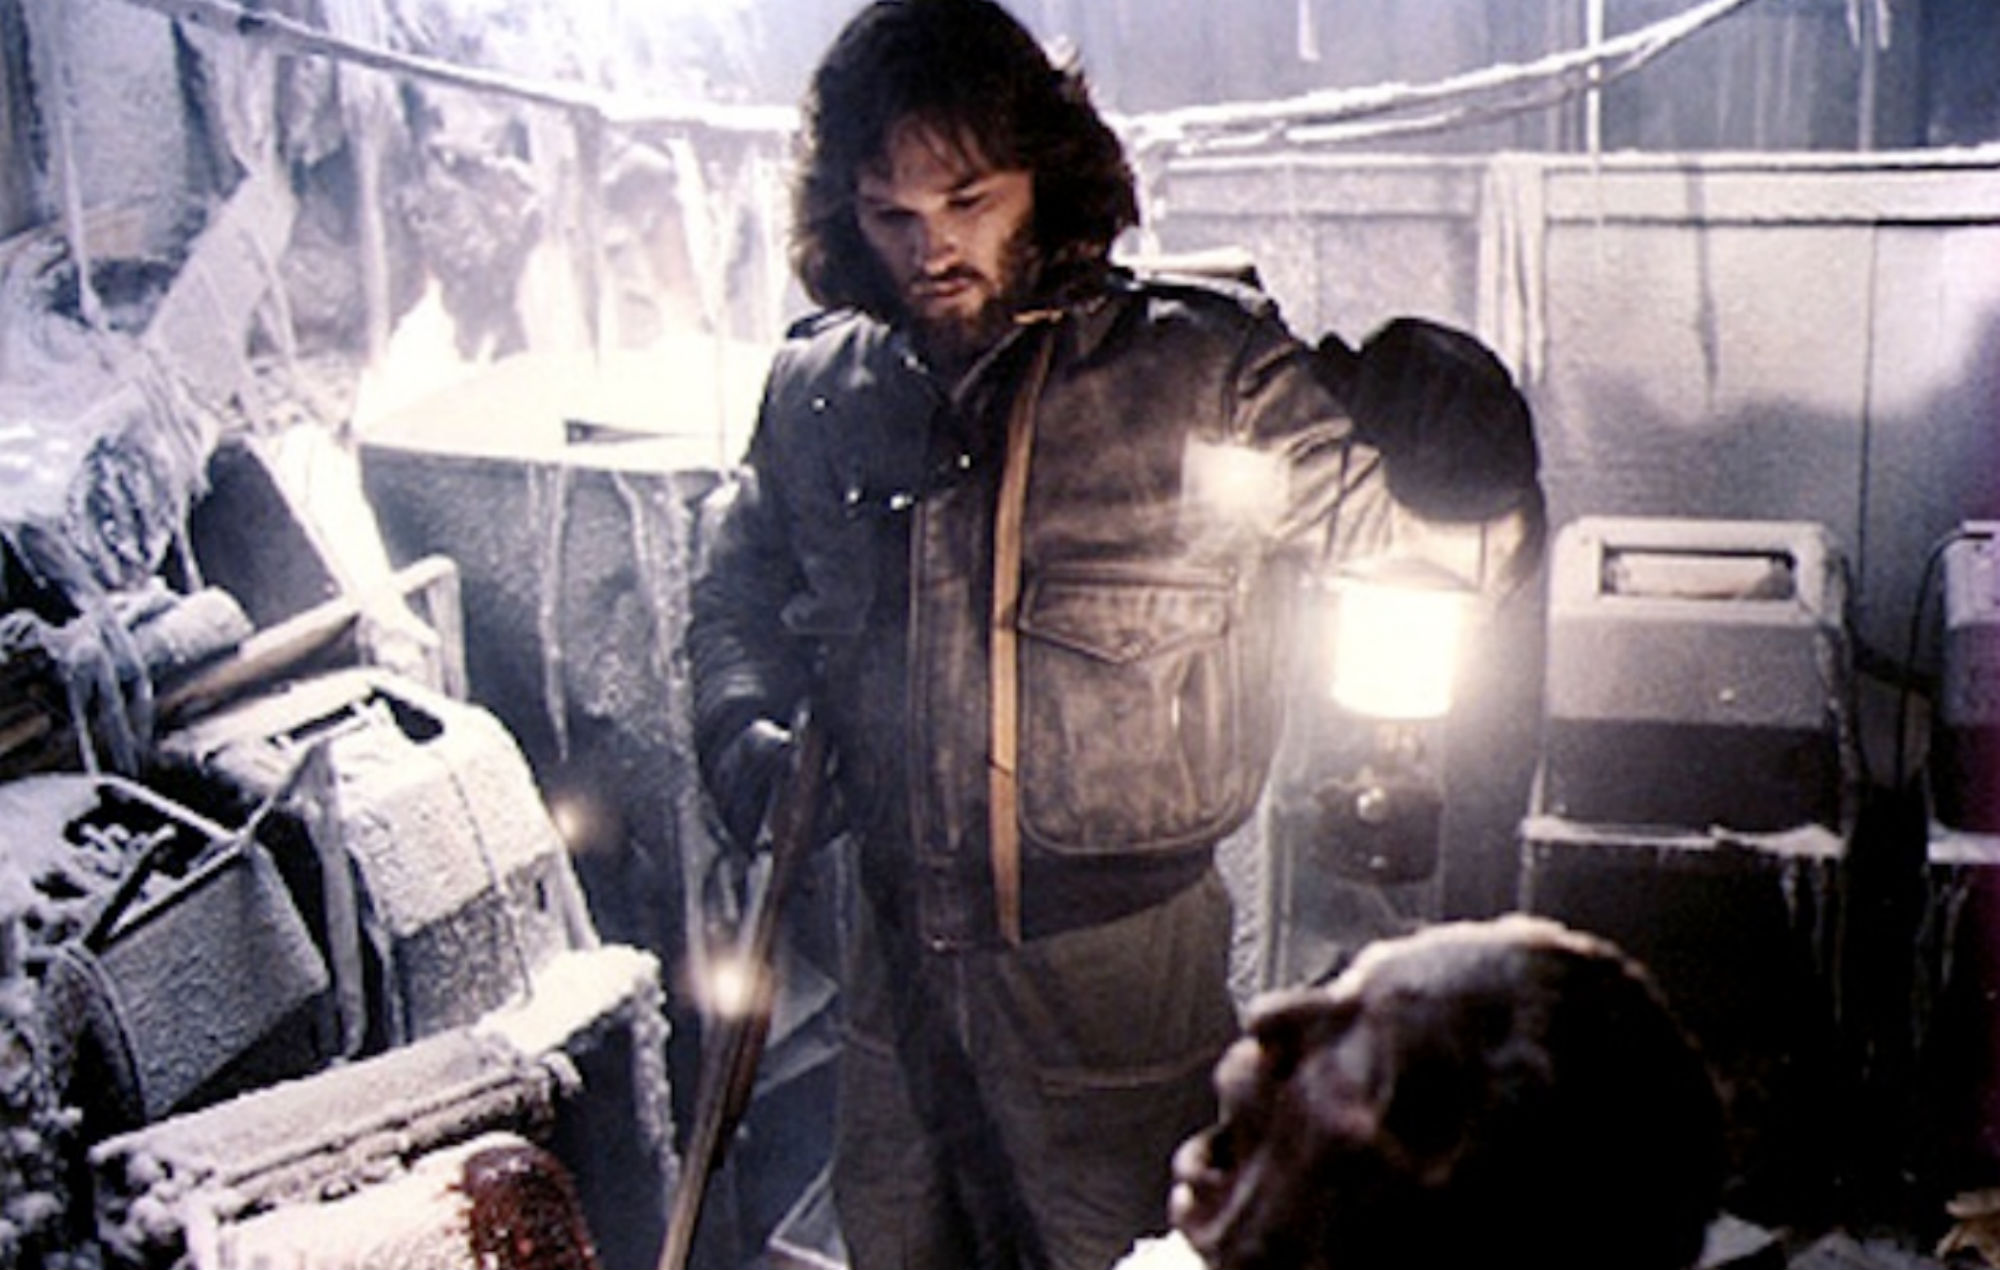 New 'The Thing' film to be adapted from lost pages of original novel